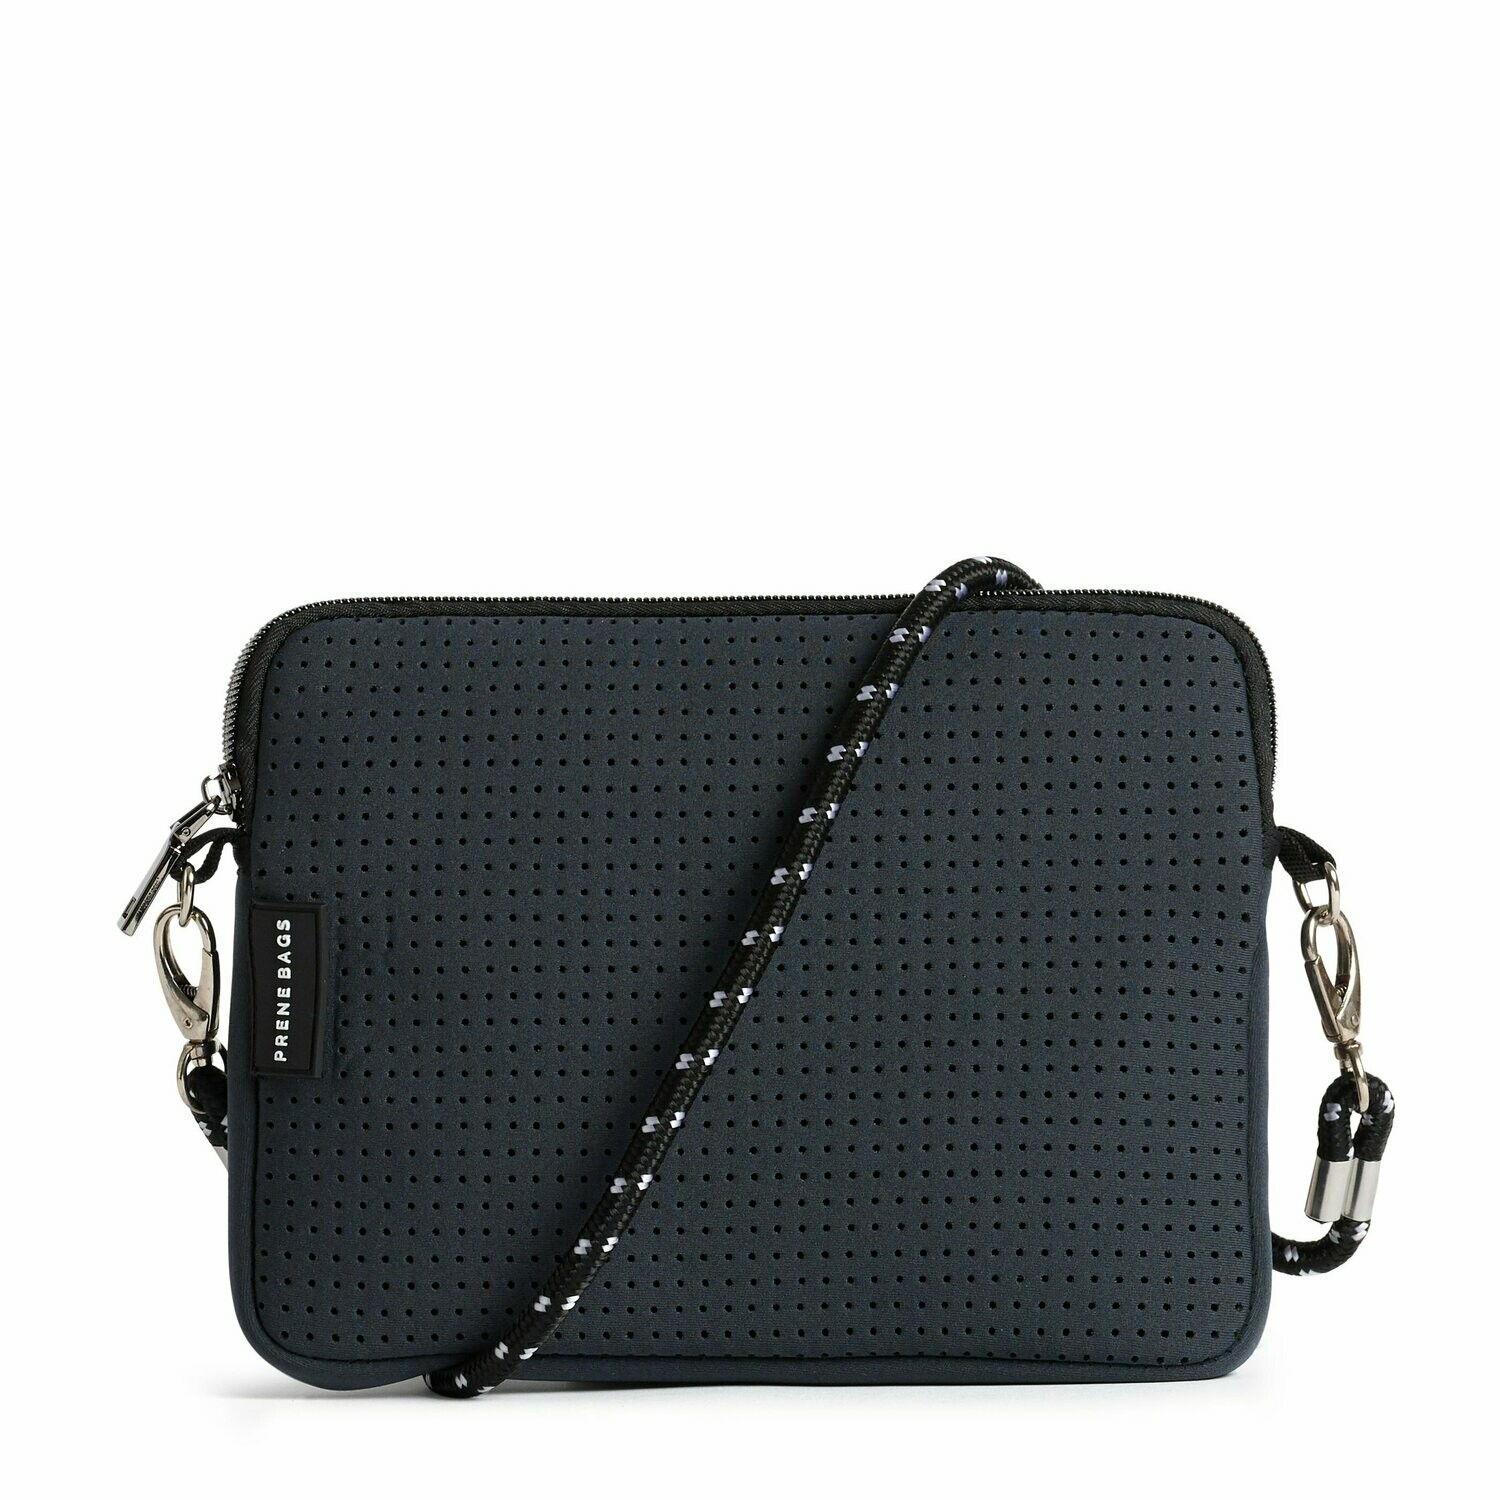 Pixie Neoprene Bag - Charcoal